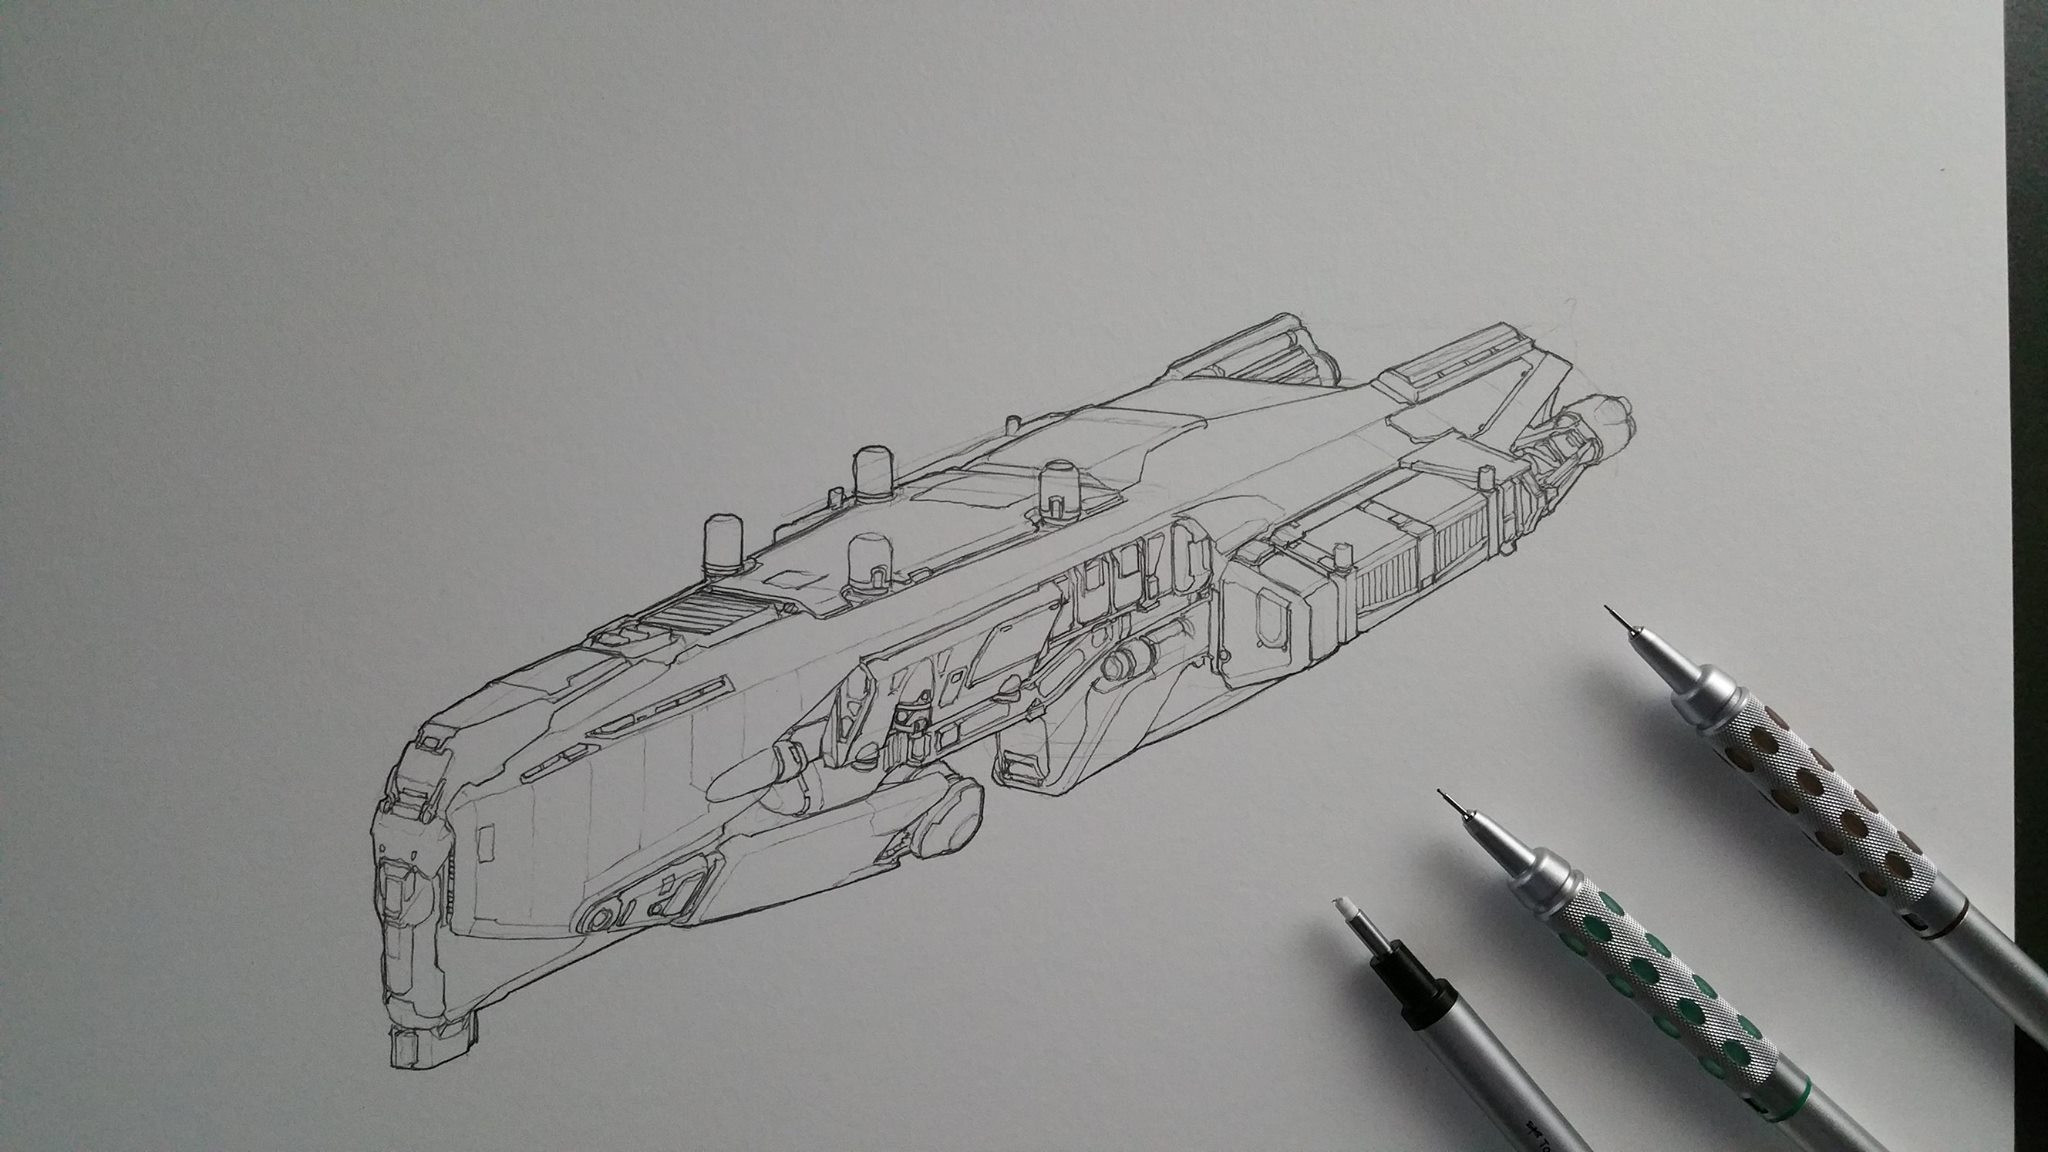 The initial sketch was done in mechanical pencil. A fine Tombow eraser was very helpful.